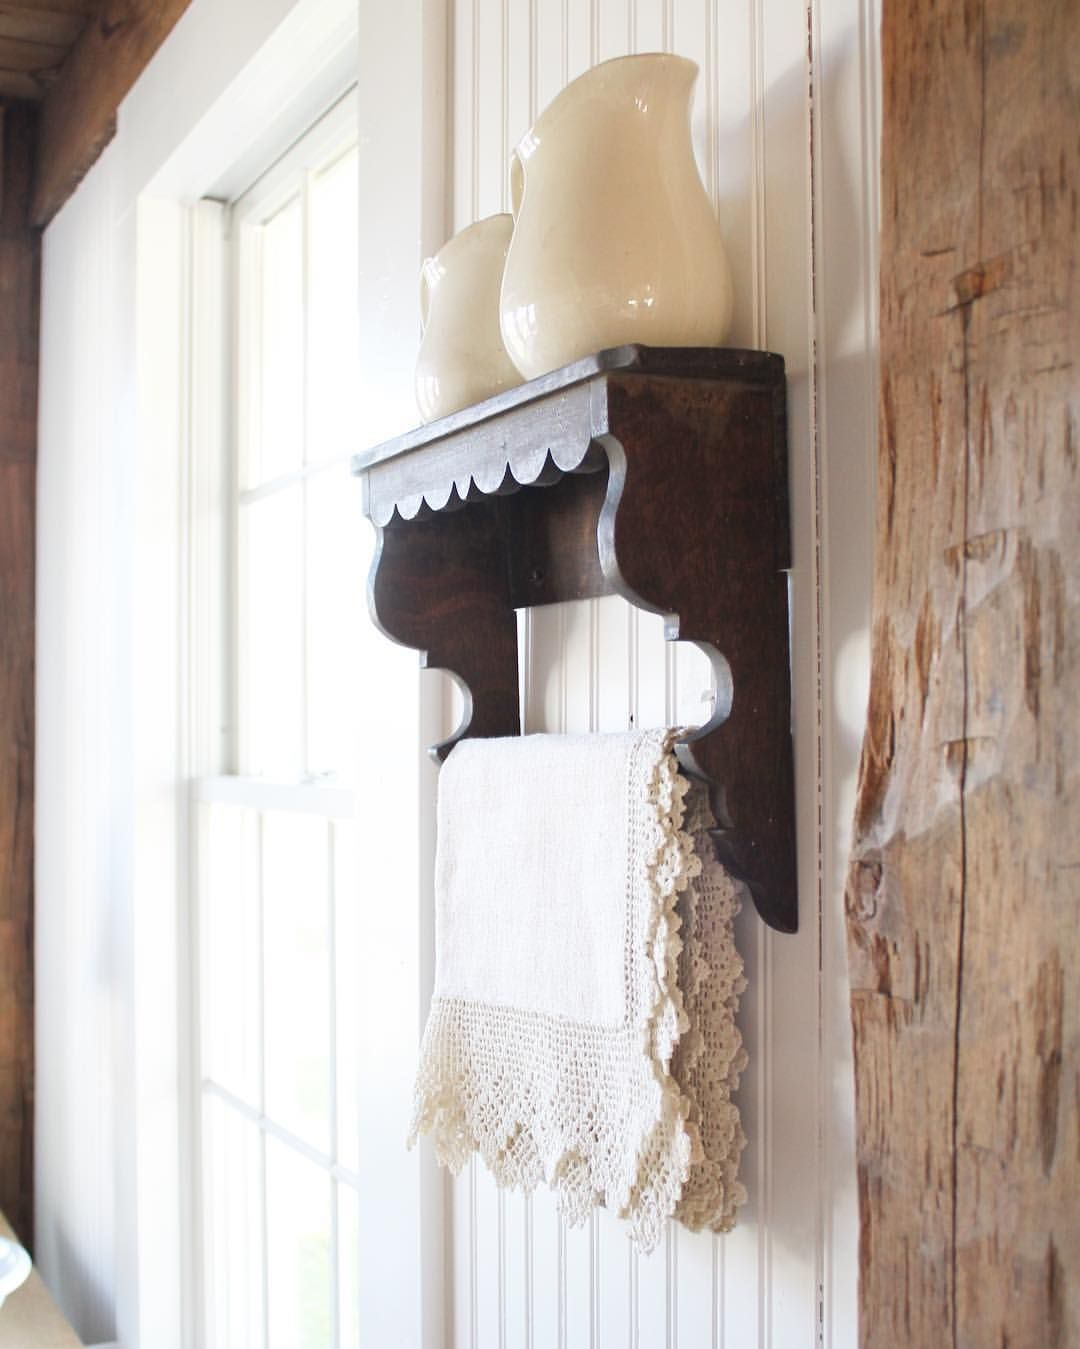 Could make the shelf with two corbels dowel and wood trim from